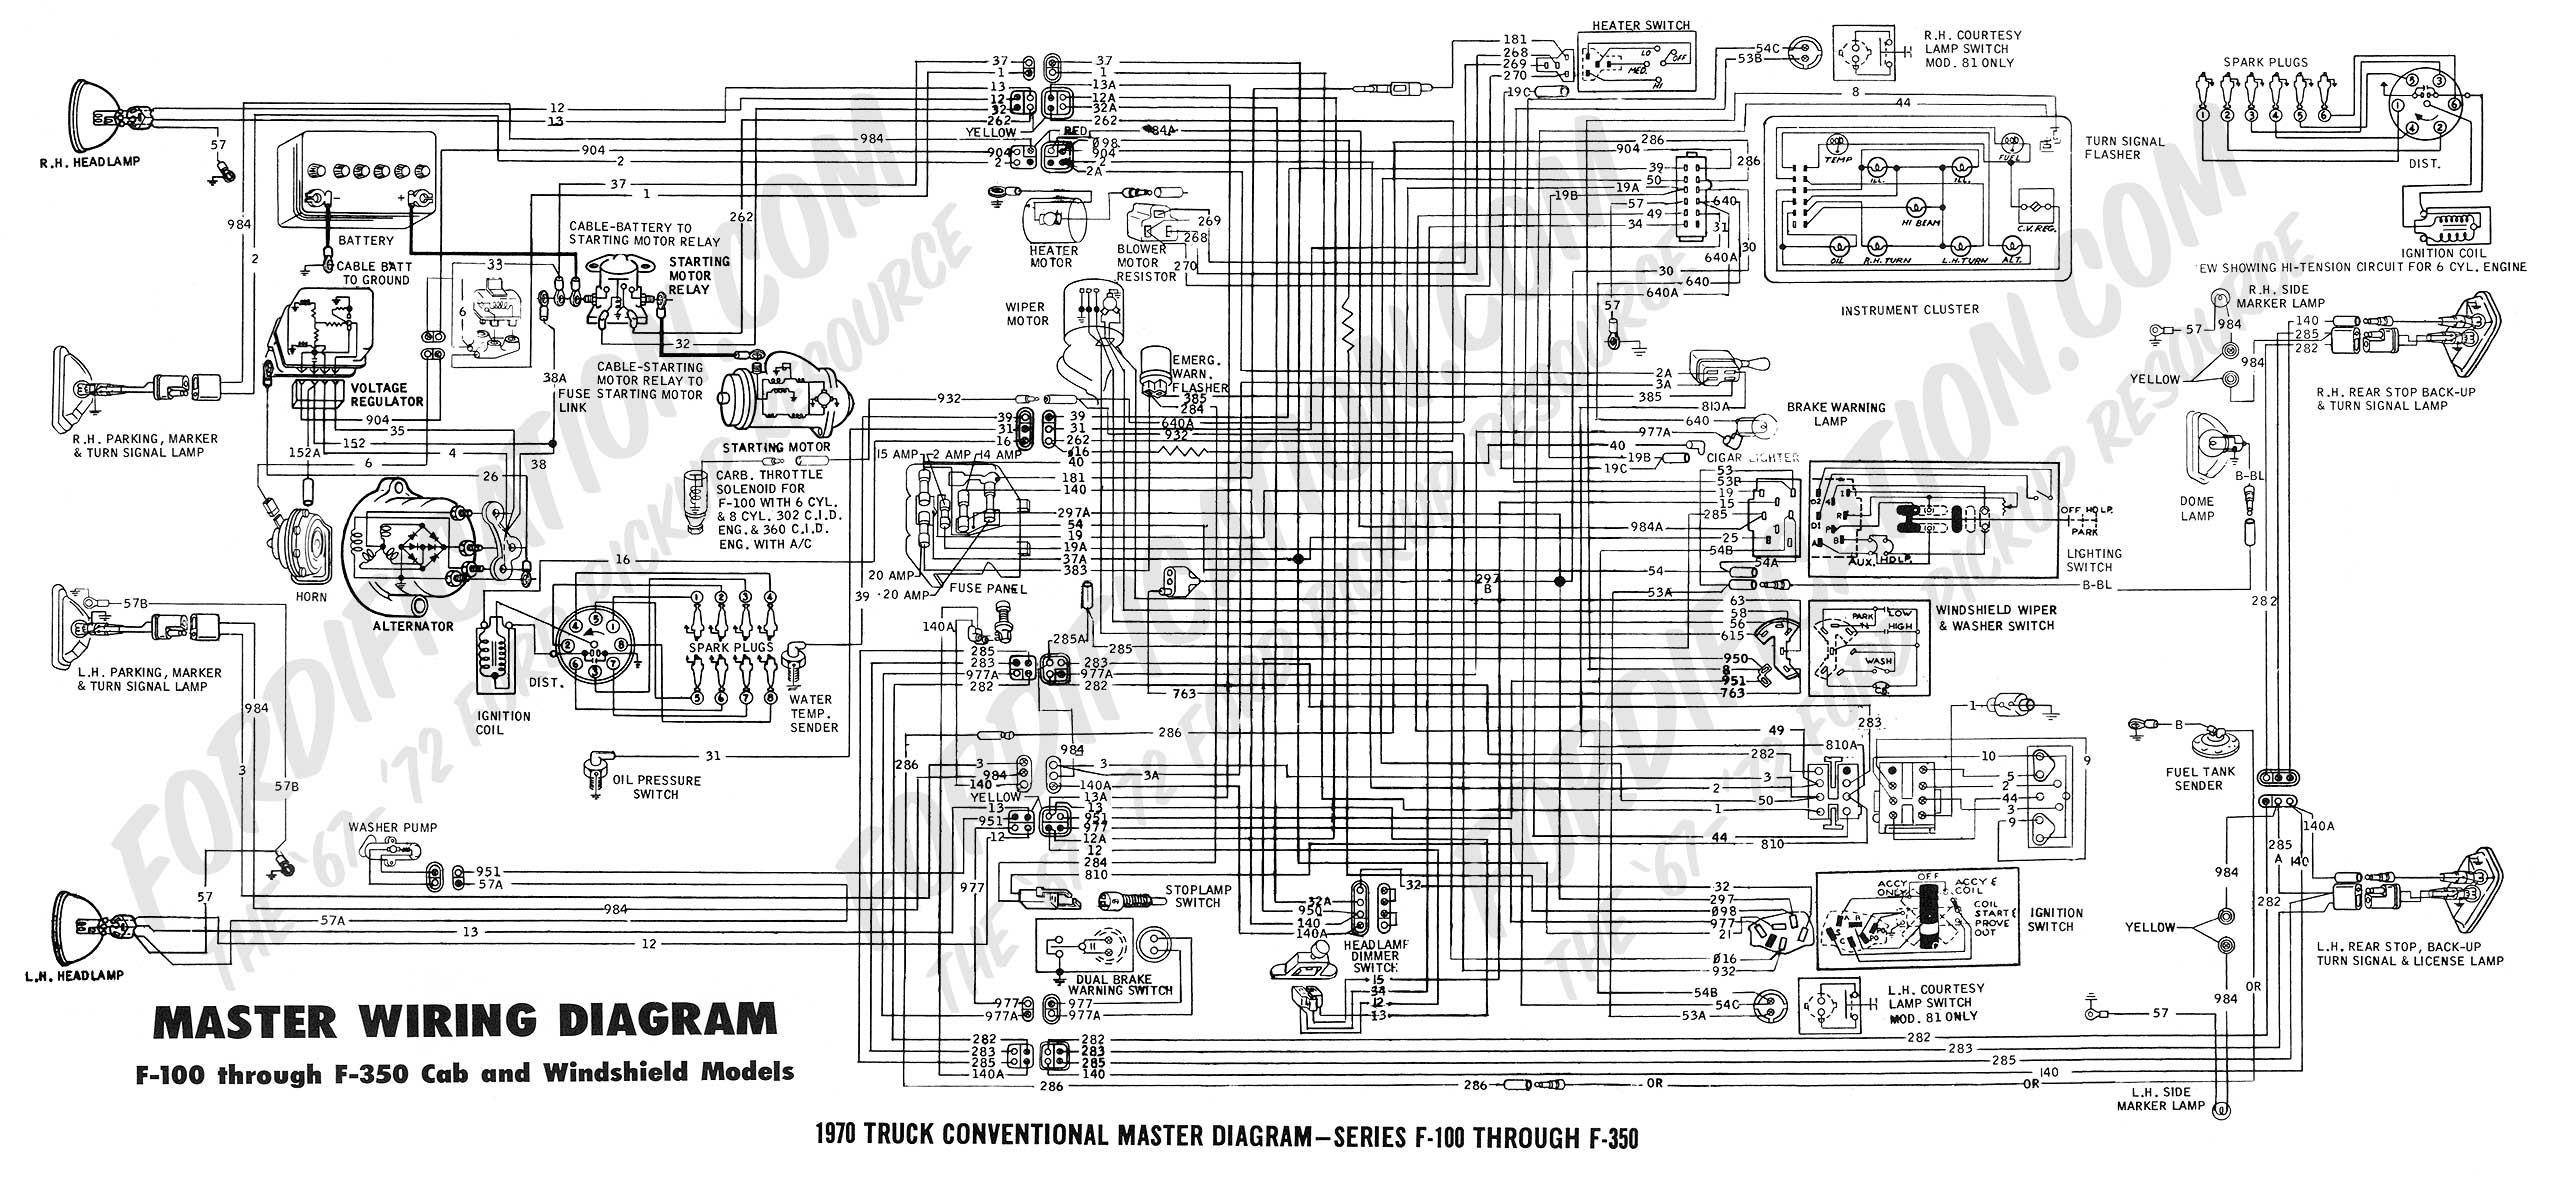 1985 dodge rv wiring diagram truck wiring diagrams truck wiring diagrams online